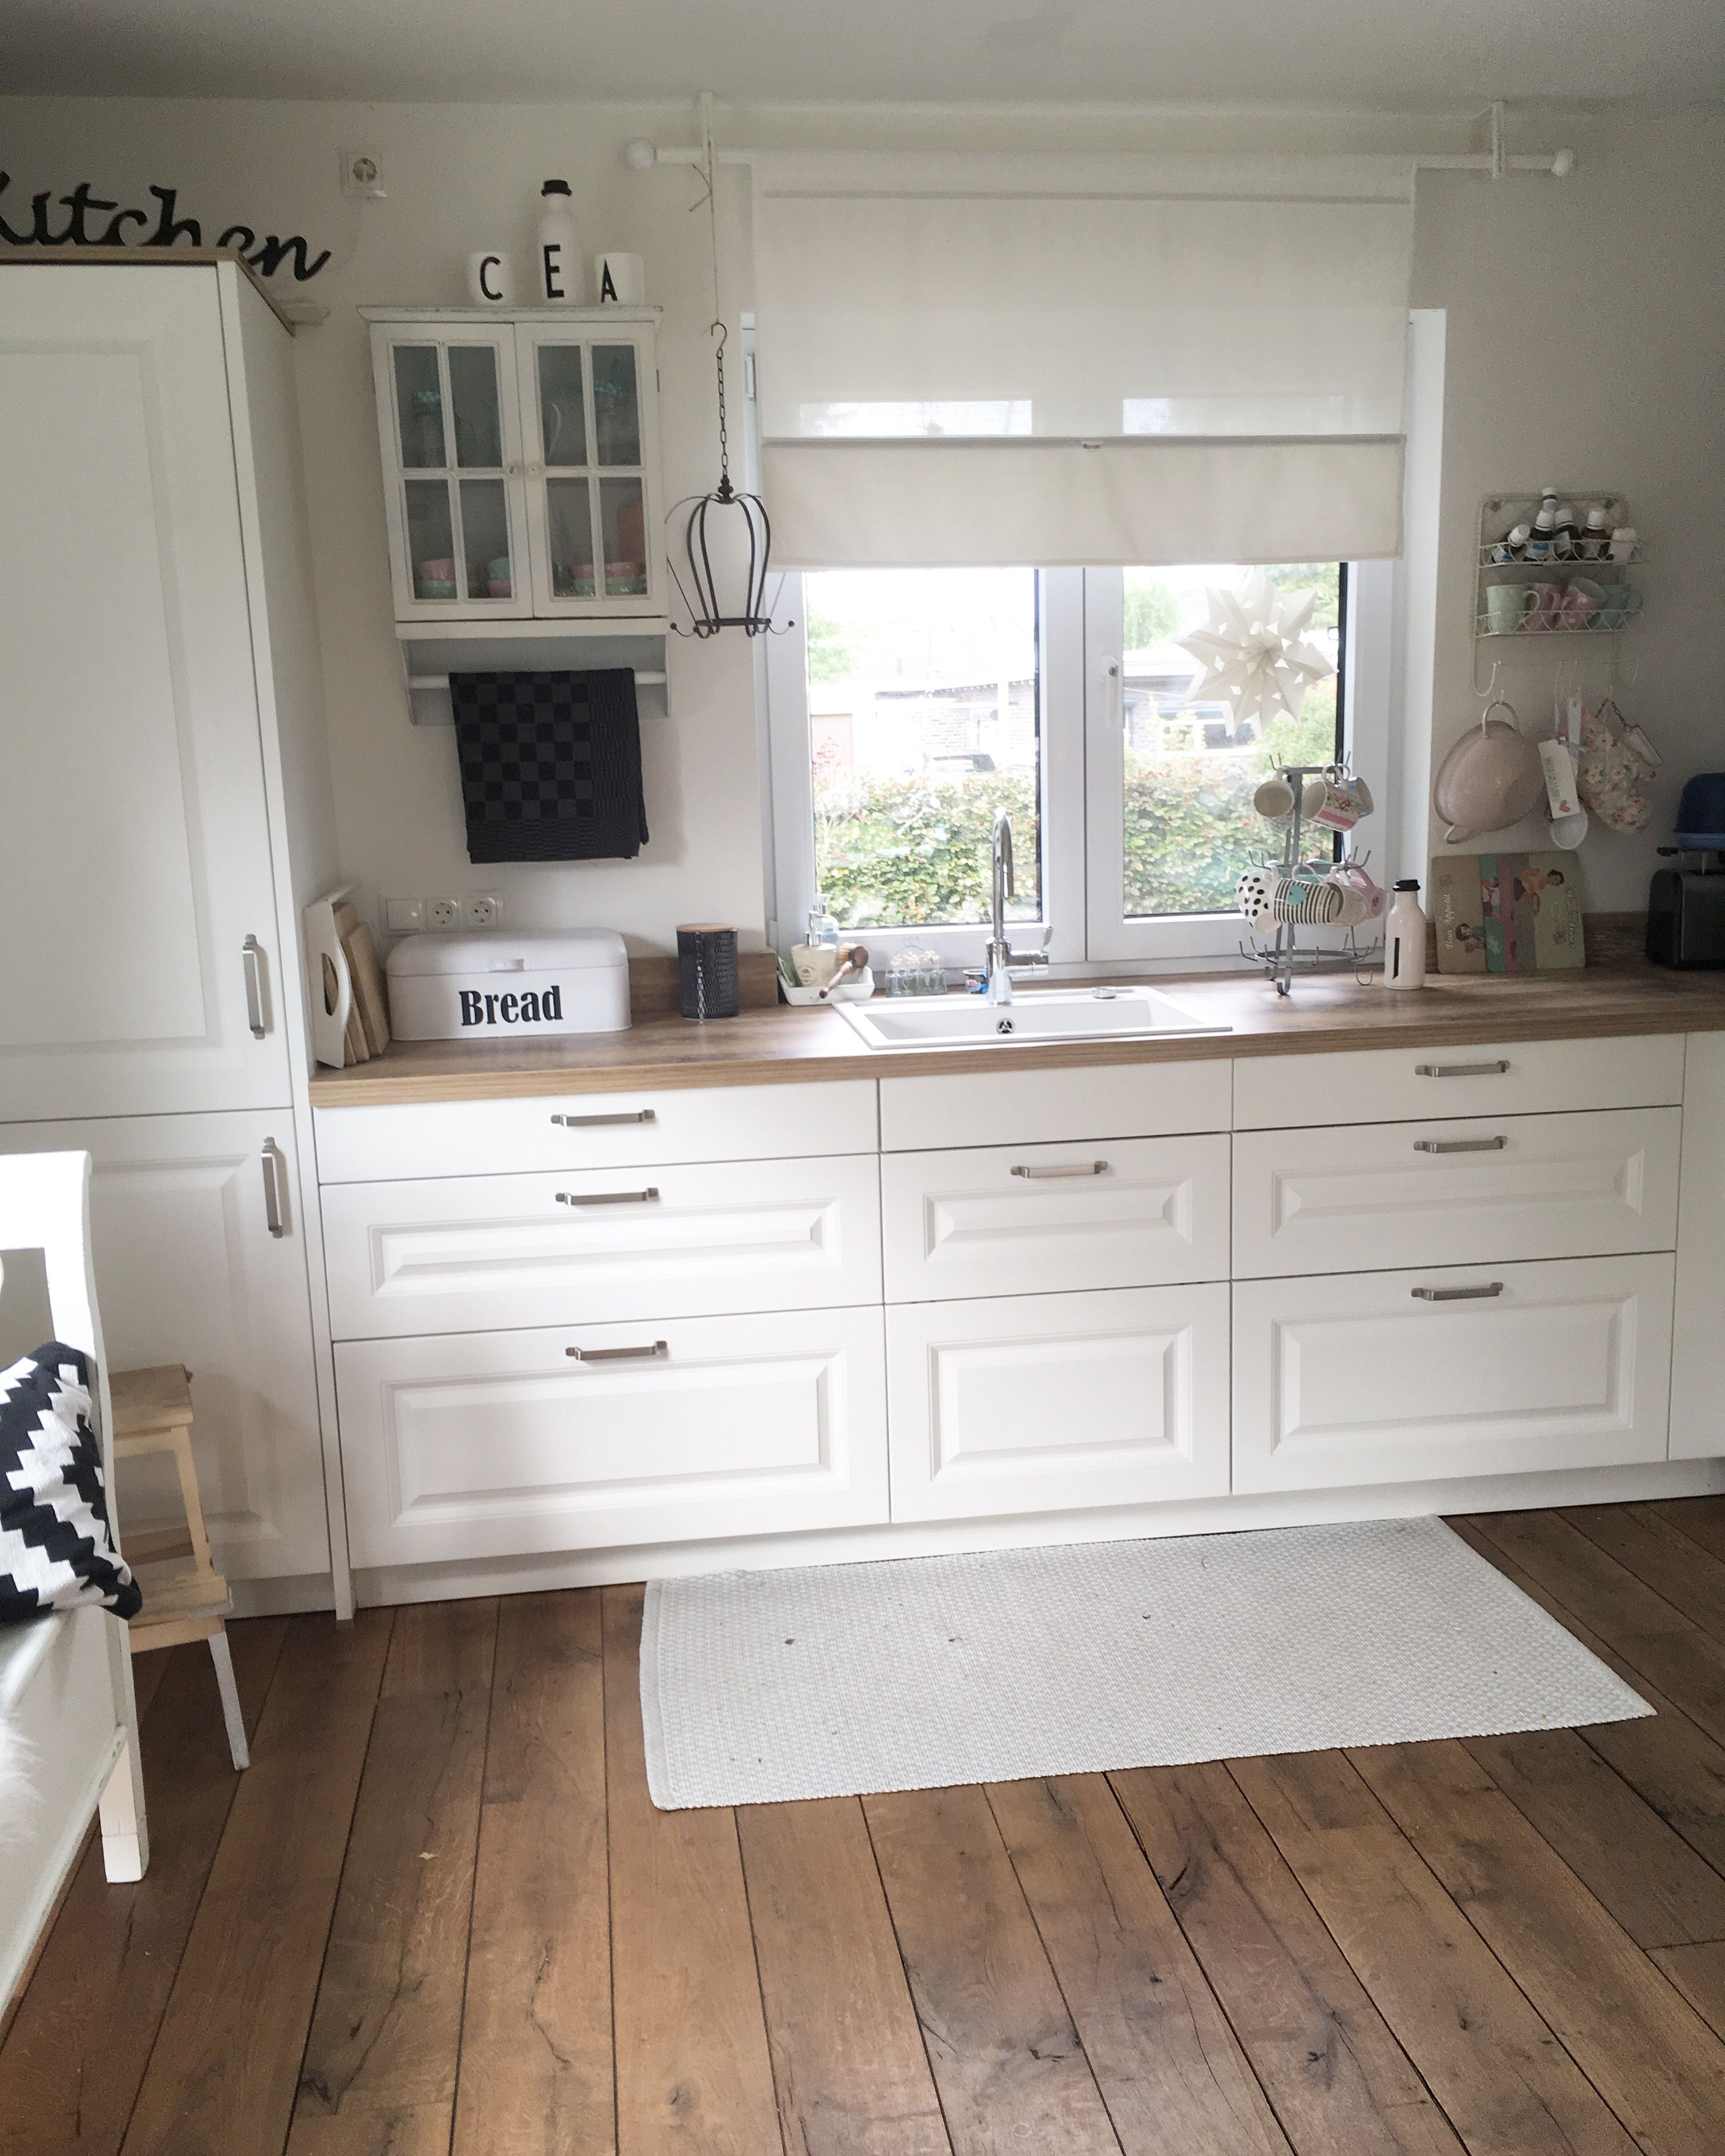 Shabby and charme modern country style decor kitchen also home decorating ideas white wooden accessories rh pinterest